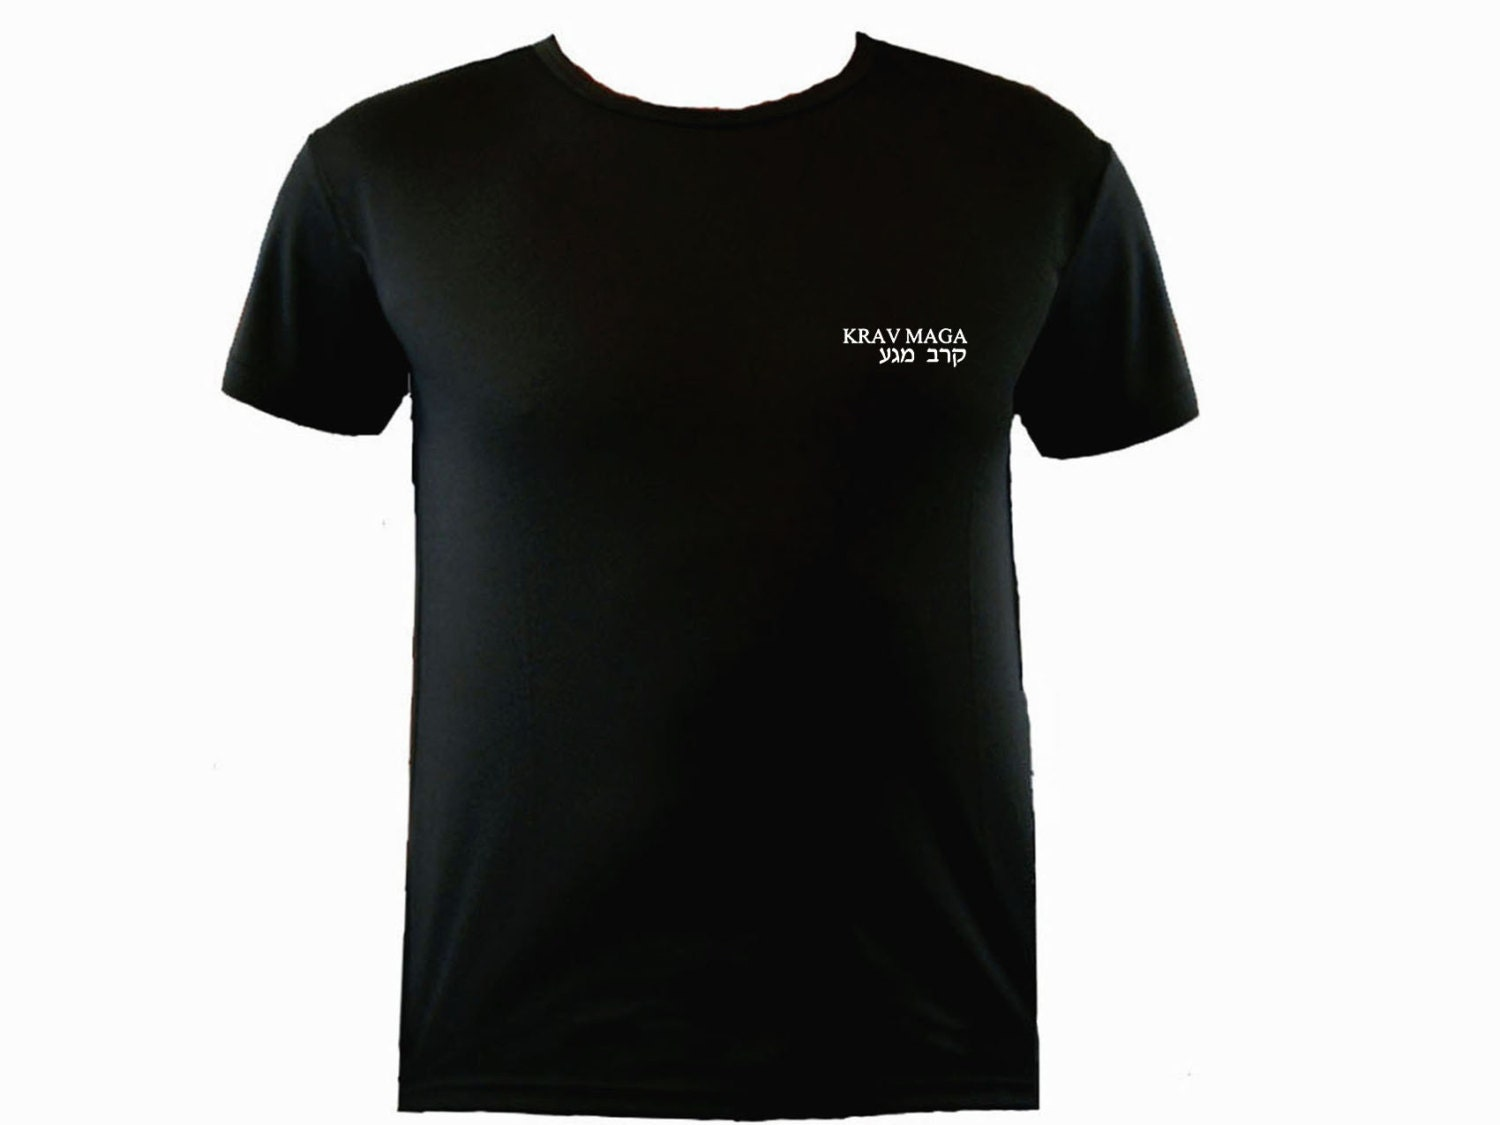 Krav Maga Englishhebrew Moisture Wicking Polyester Black Workout T-shirt S-xl Unisex Tshirt